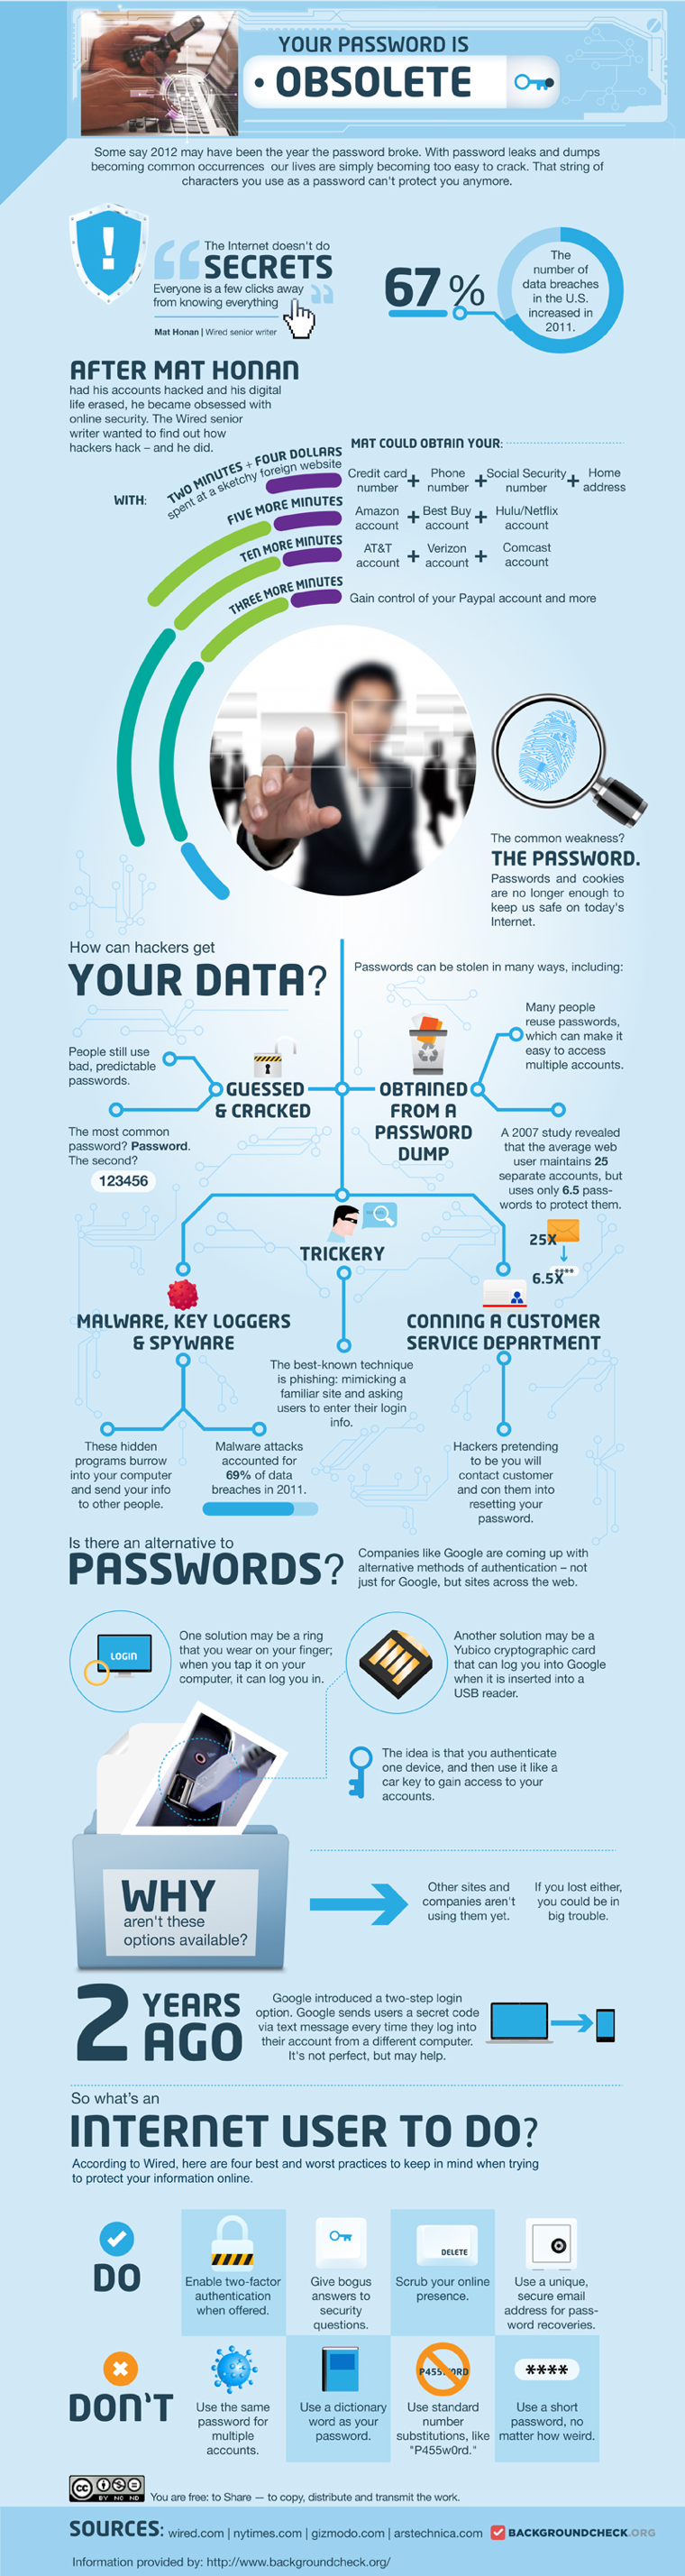 password-security-infographic